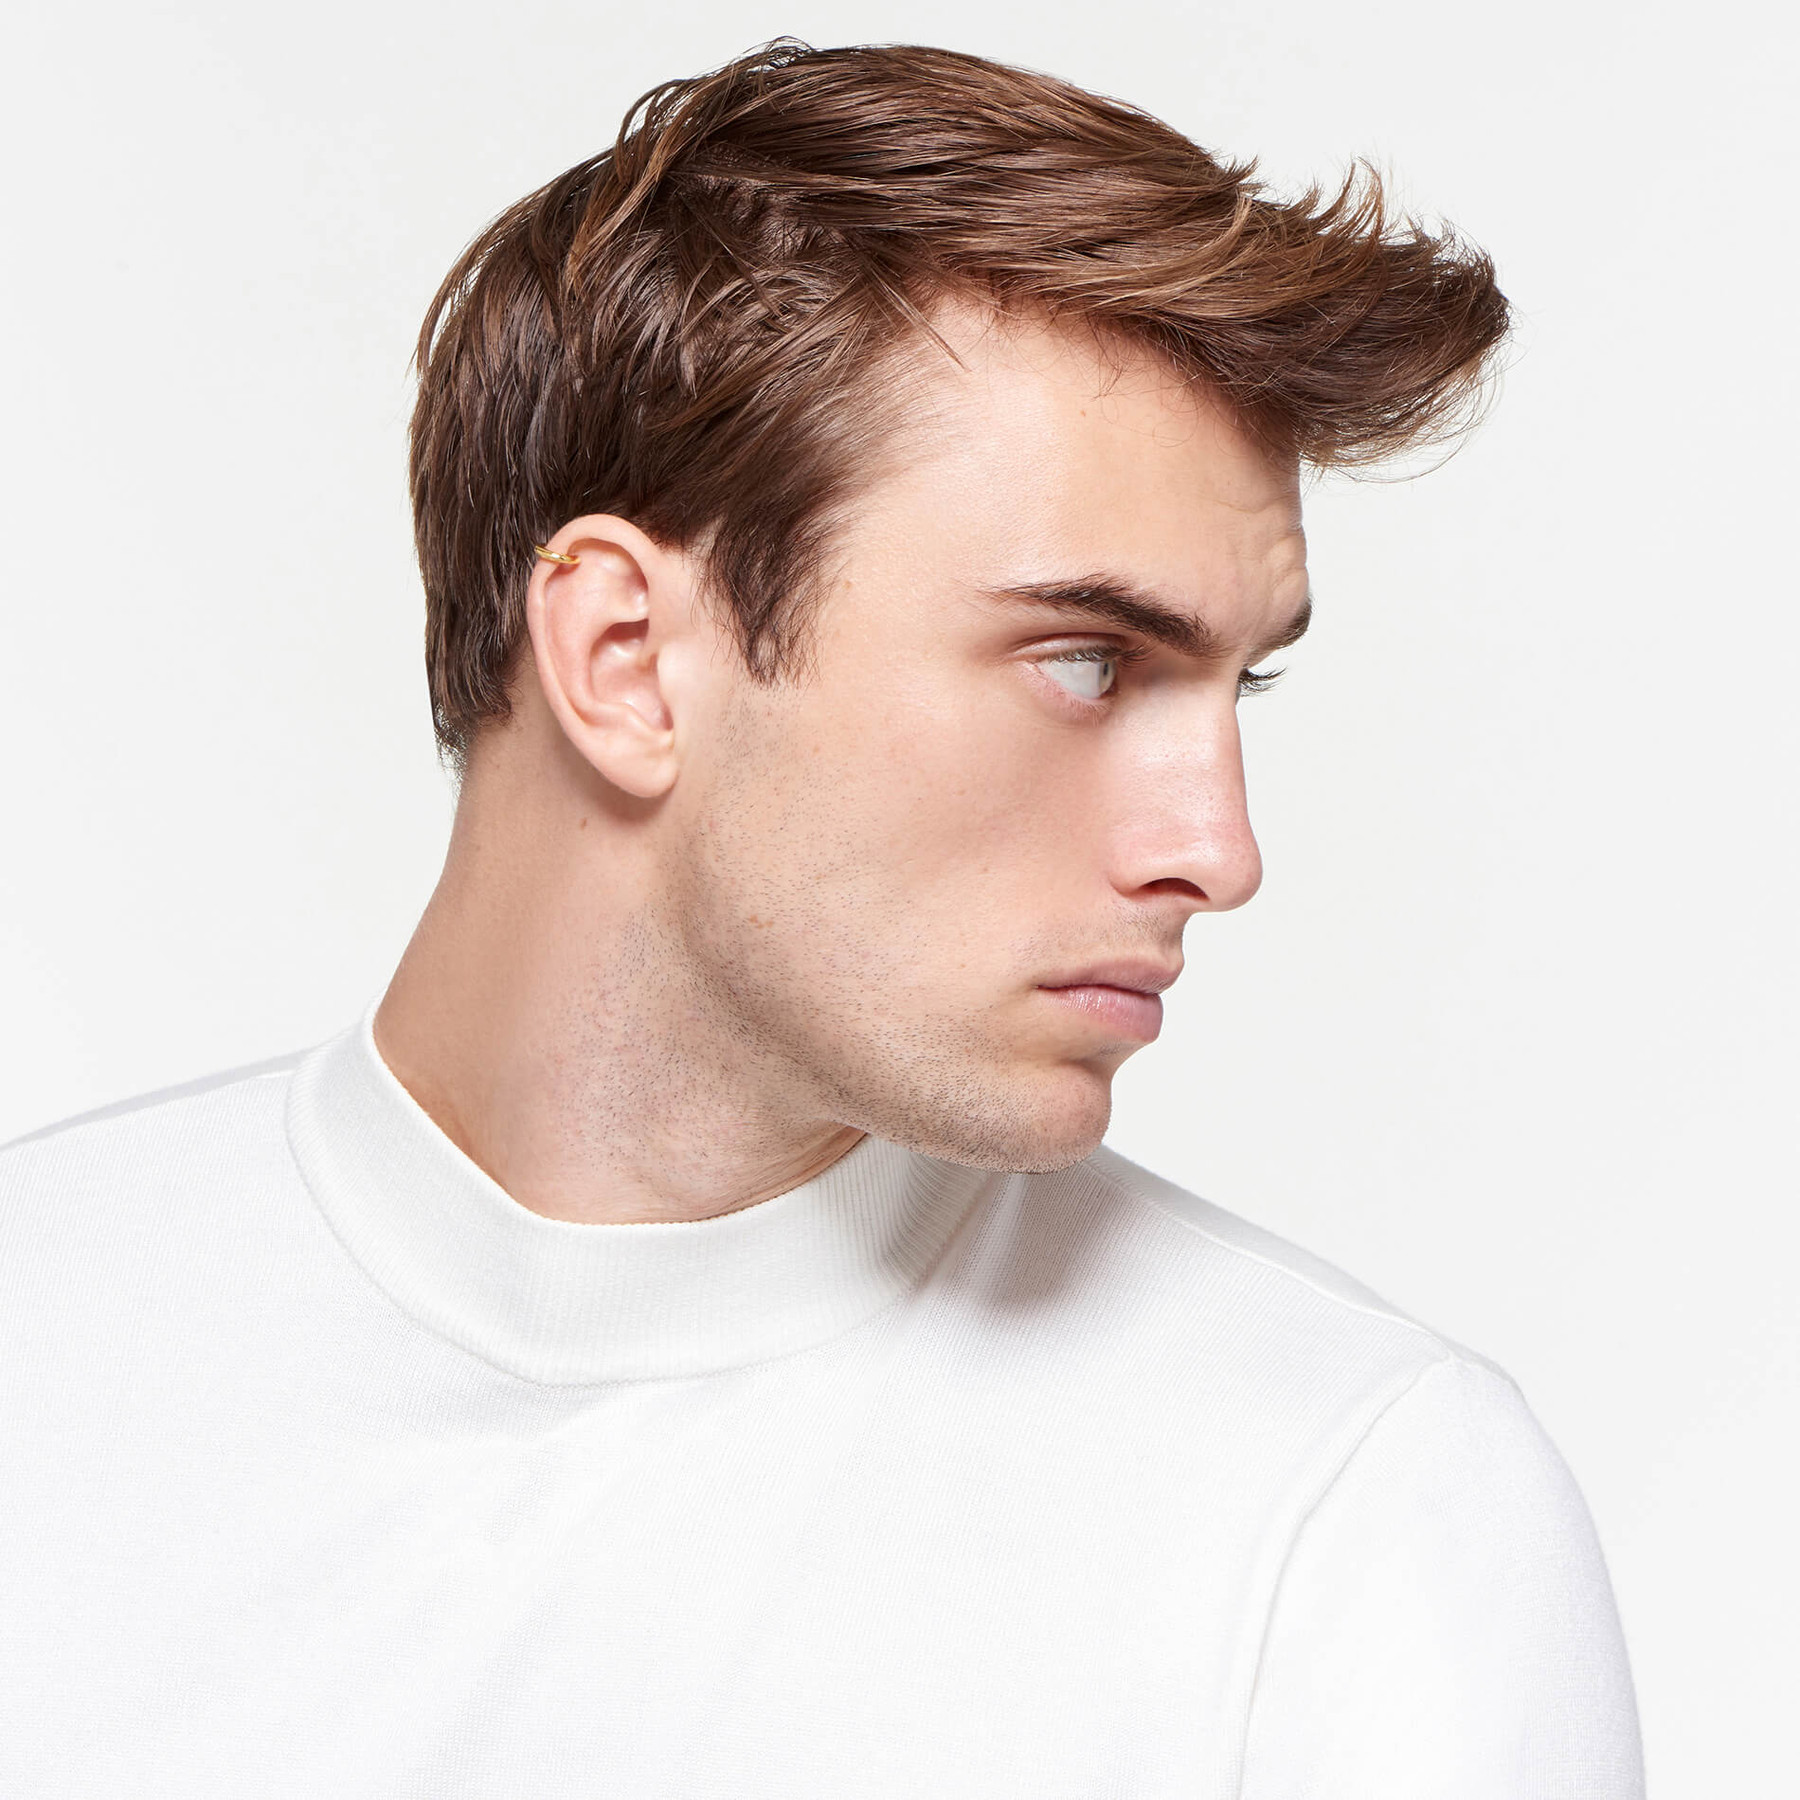 22 karat polished gold ear cuff worn by brooding male model in profile